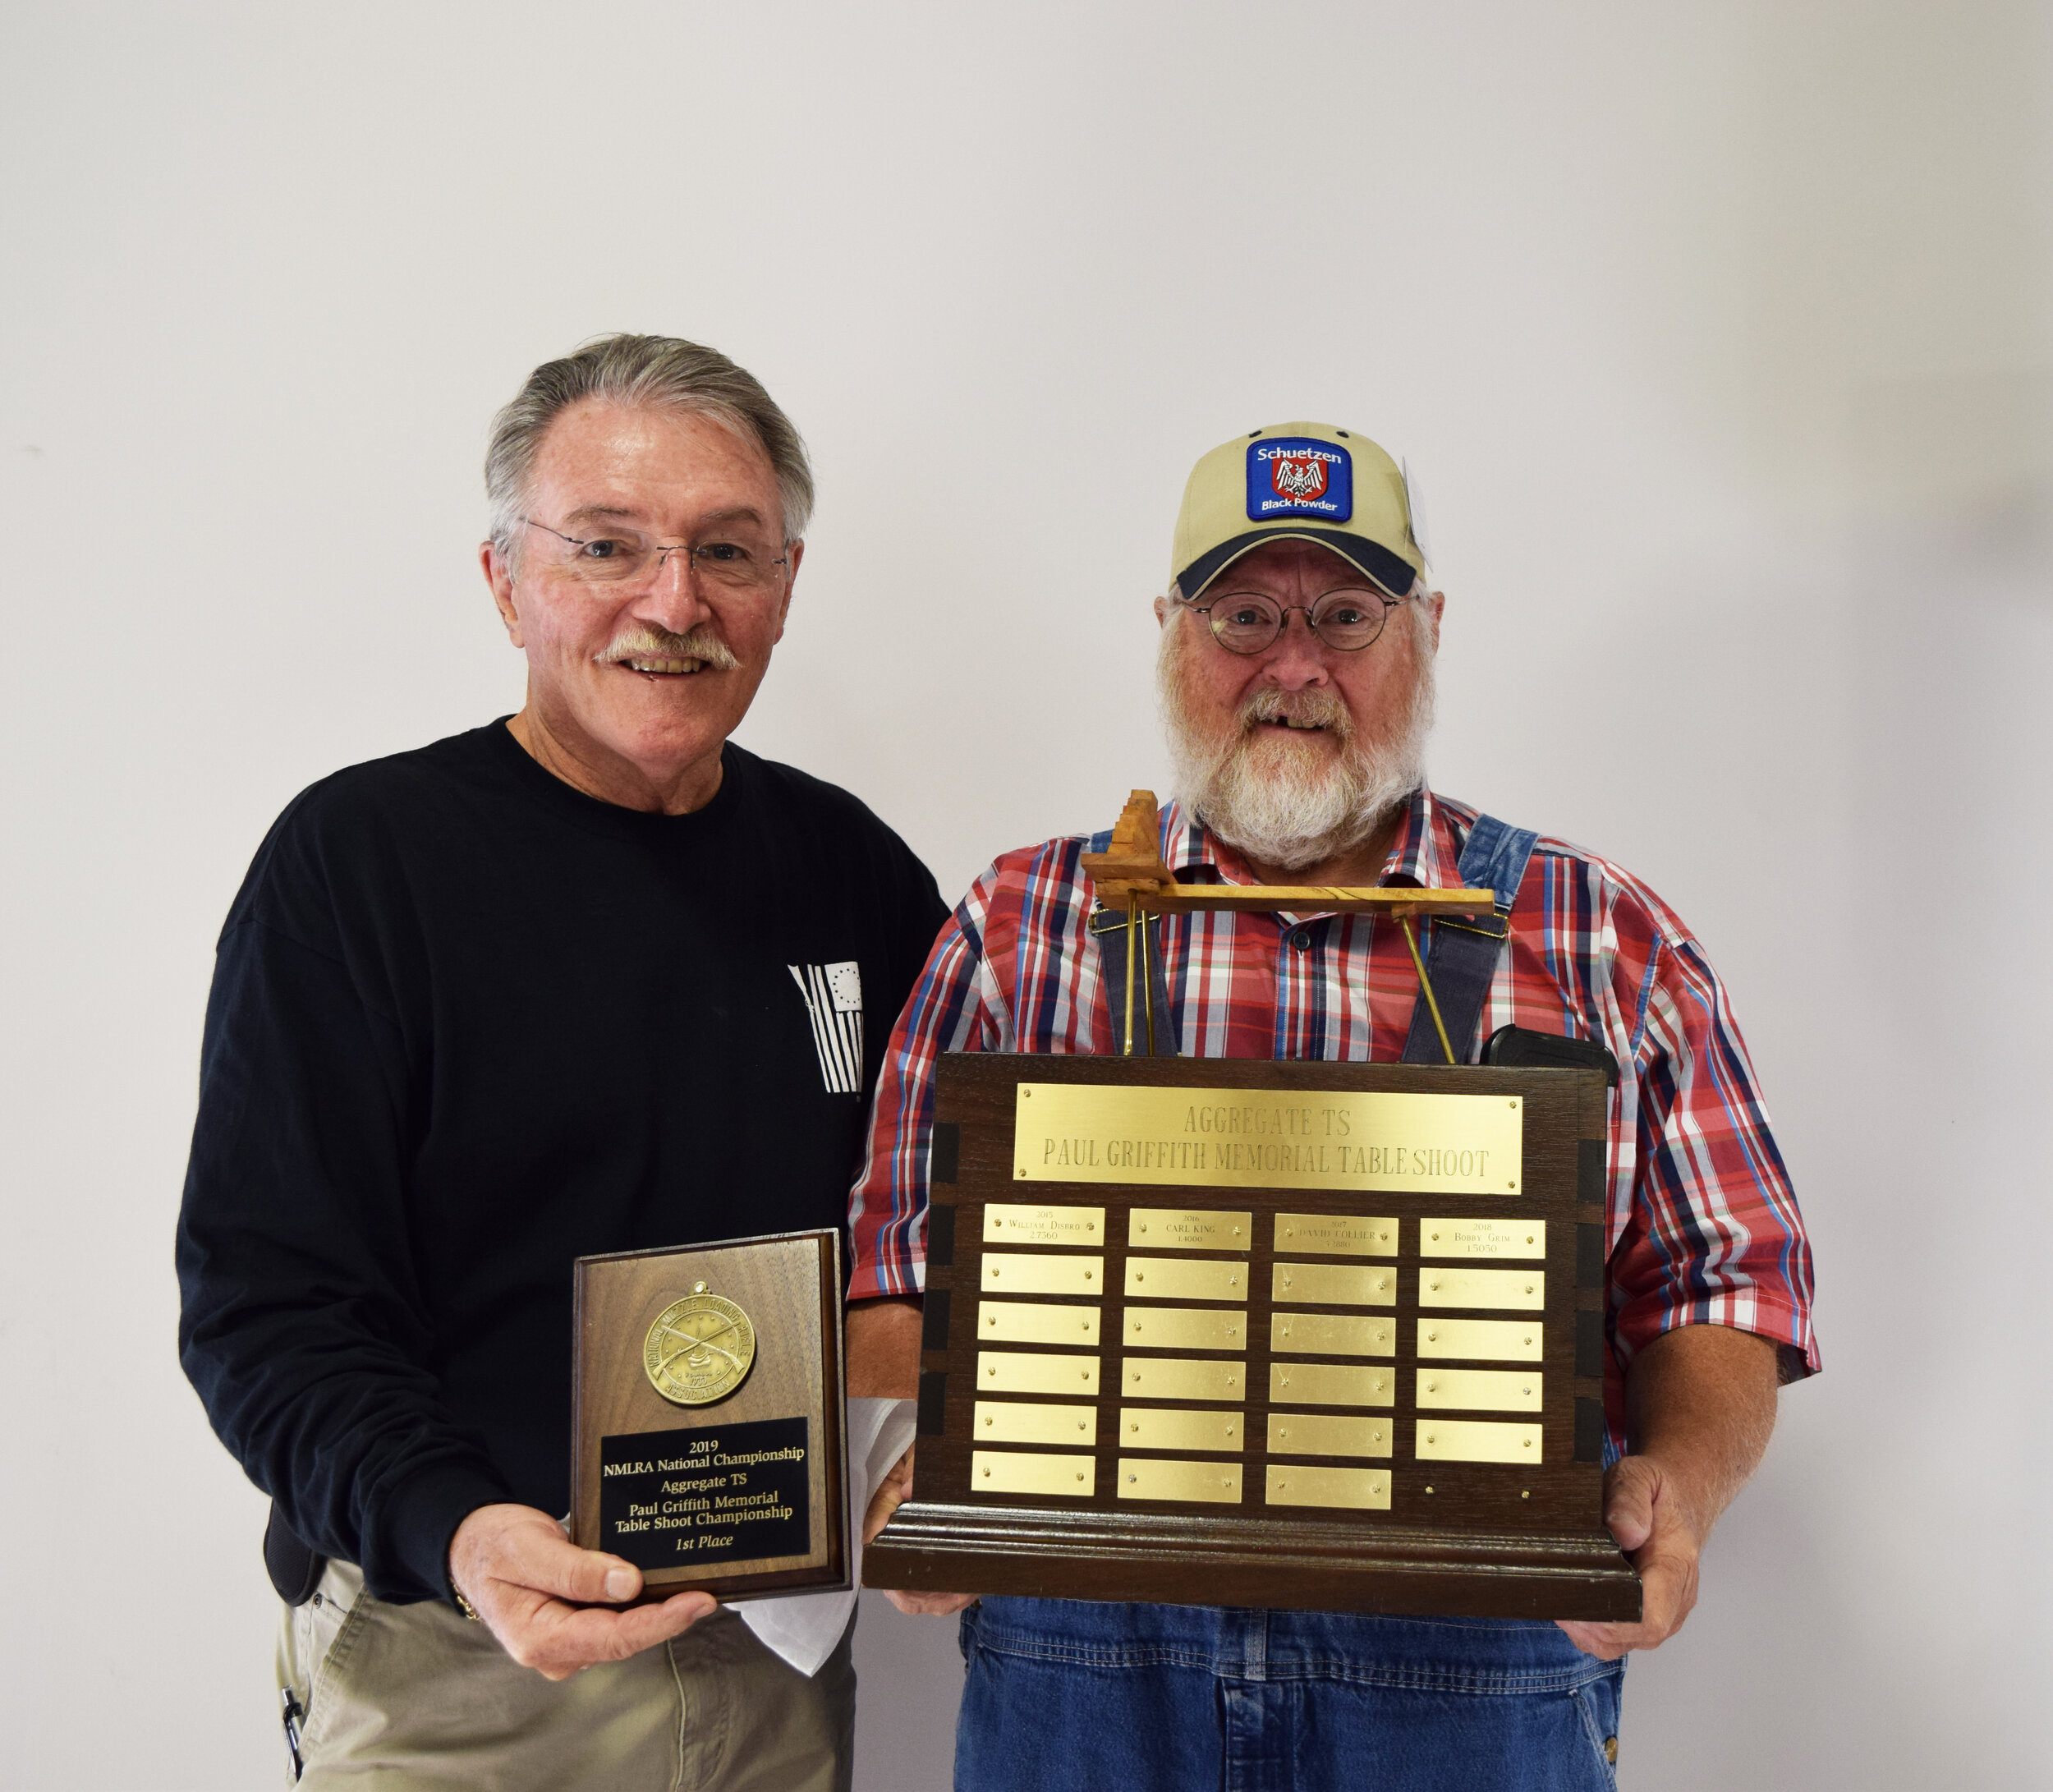 Carl King - Aggregate TS - Paul Griffith Memorial Table Shoot Championship Winner with NMLRA President Brent Steele - Carl also sat a new record score with this aggregate.